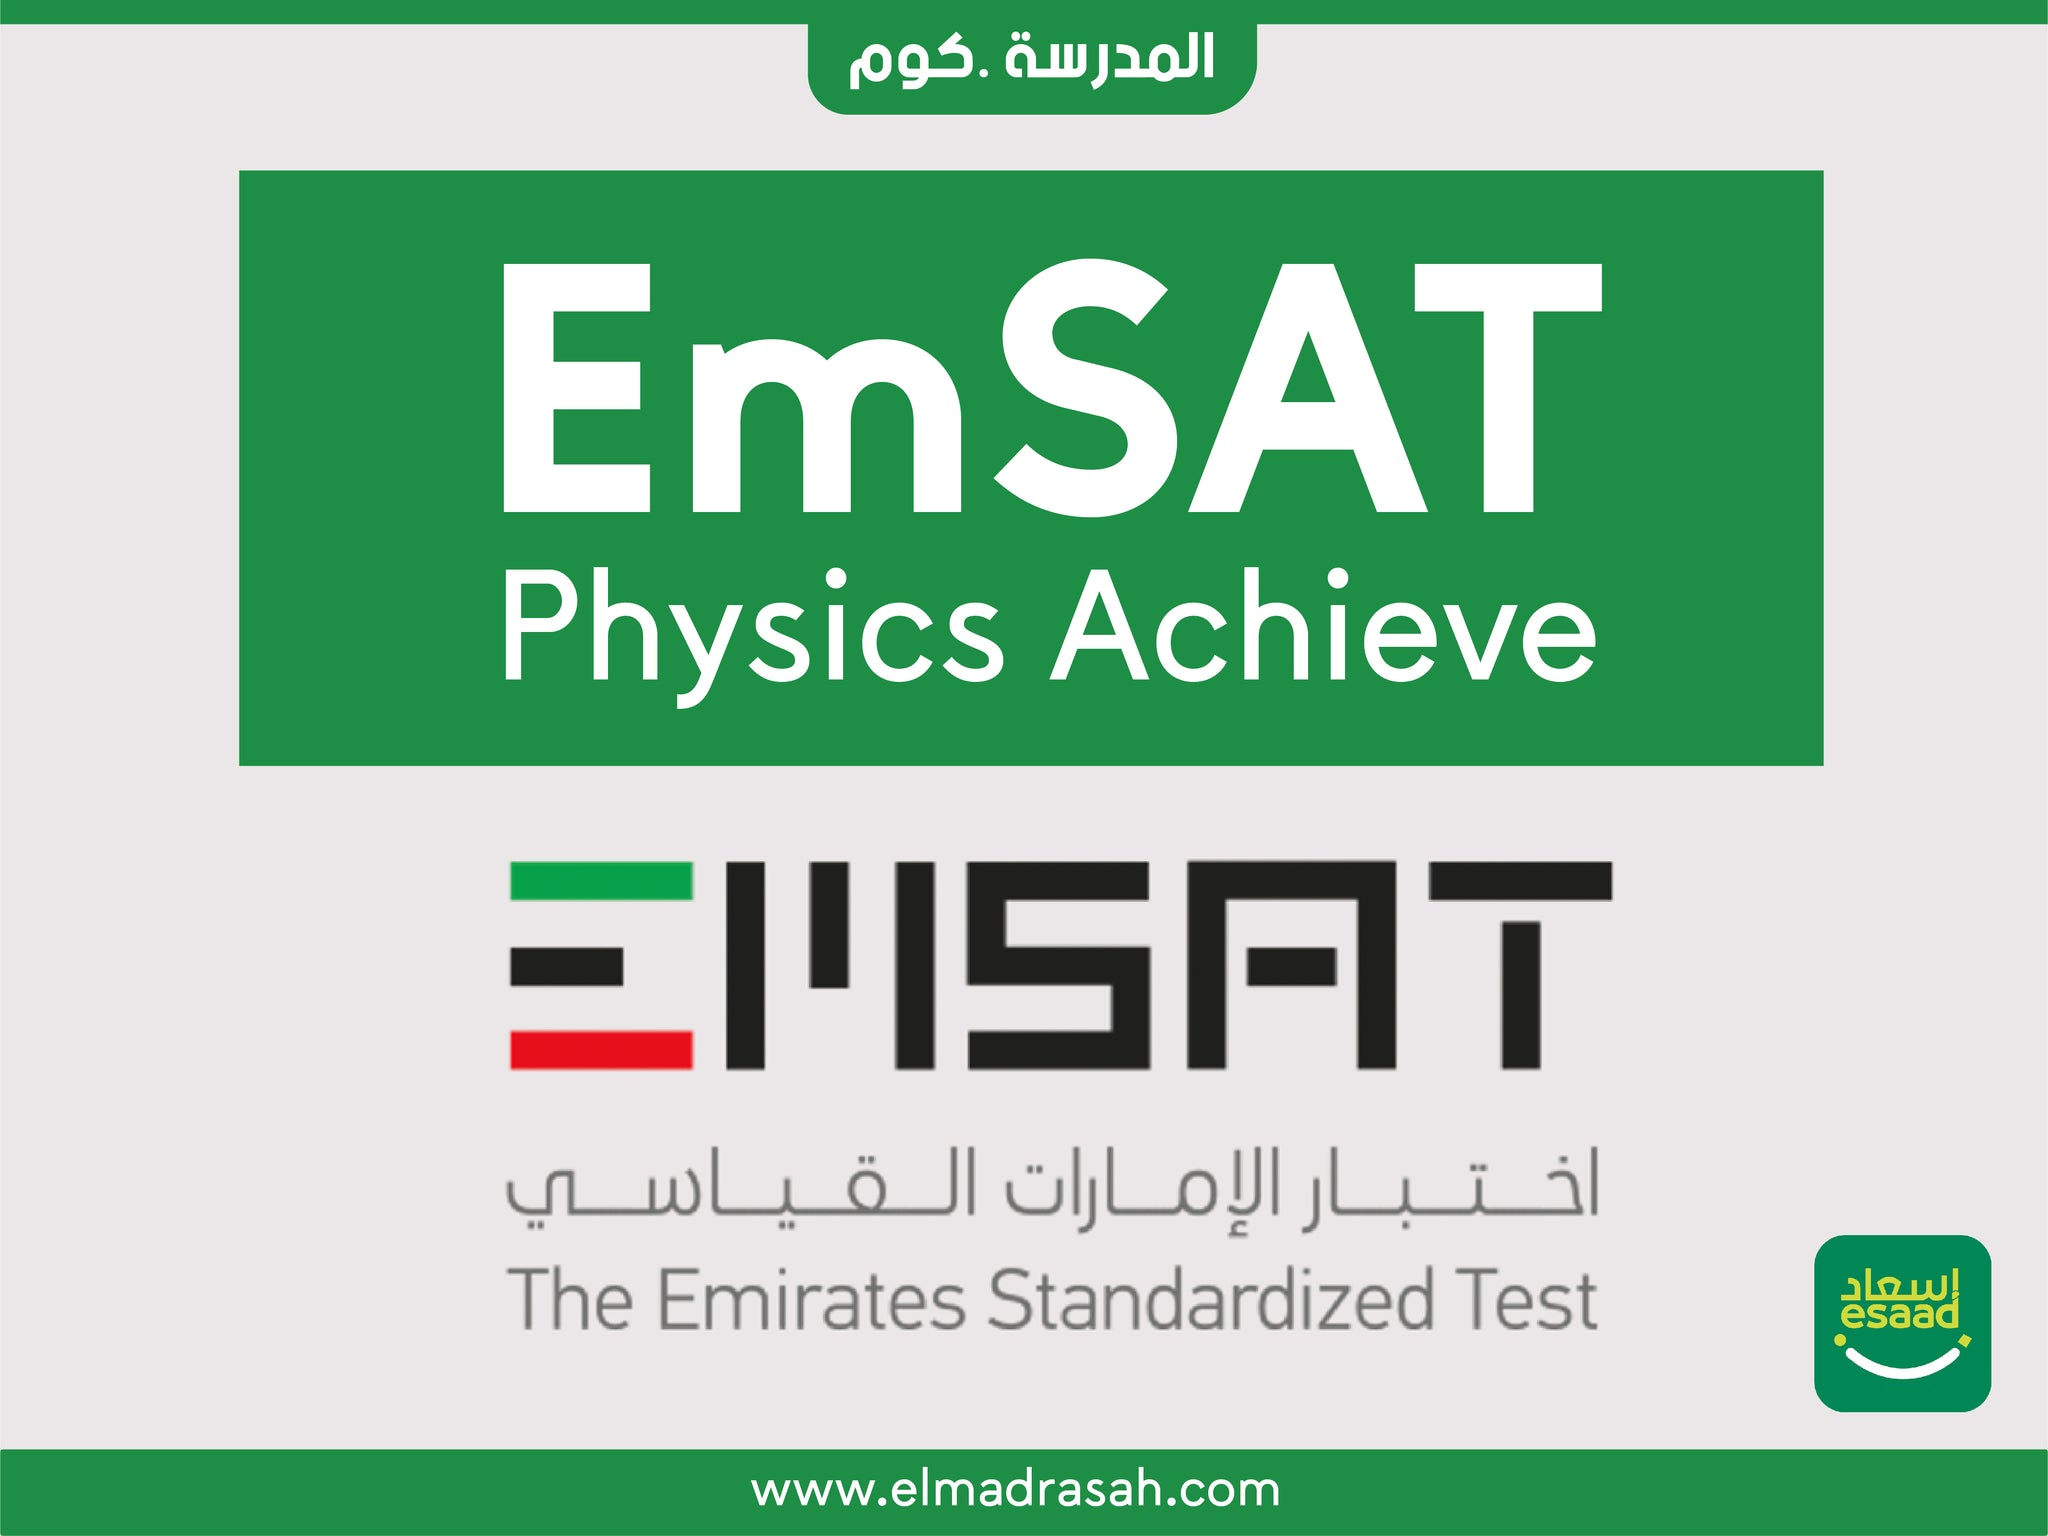 EmSAT Physics Achive Course Preparation and coaching to get high EmSAT exam results.